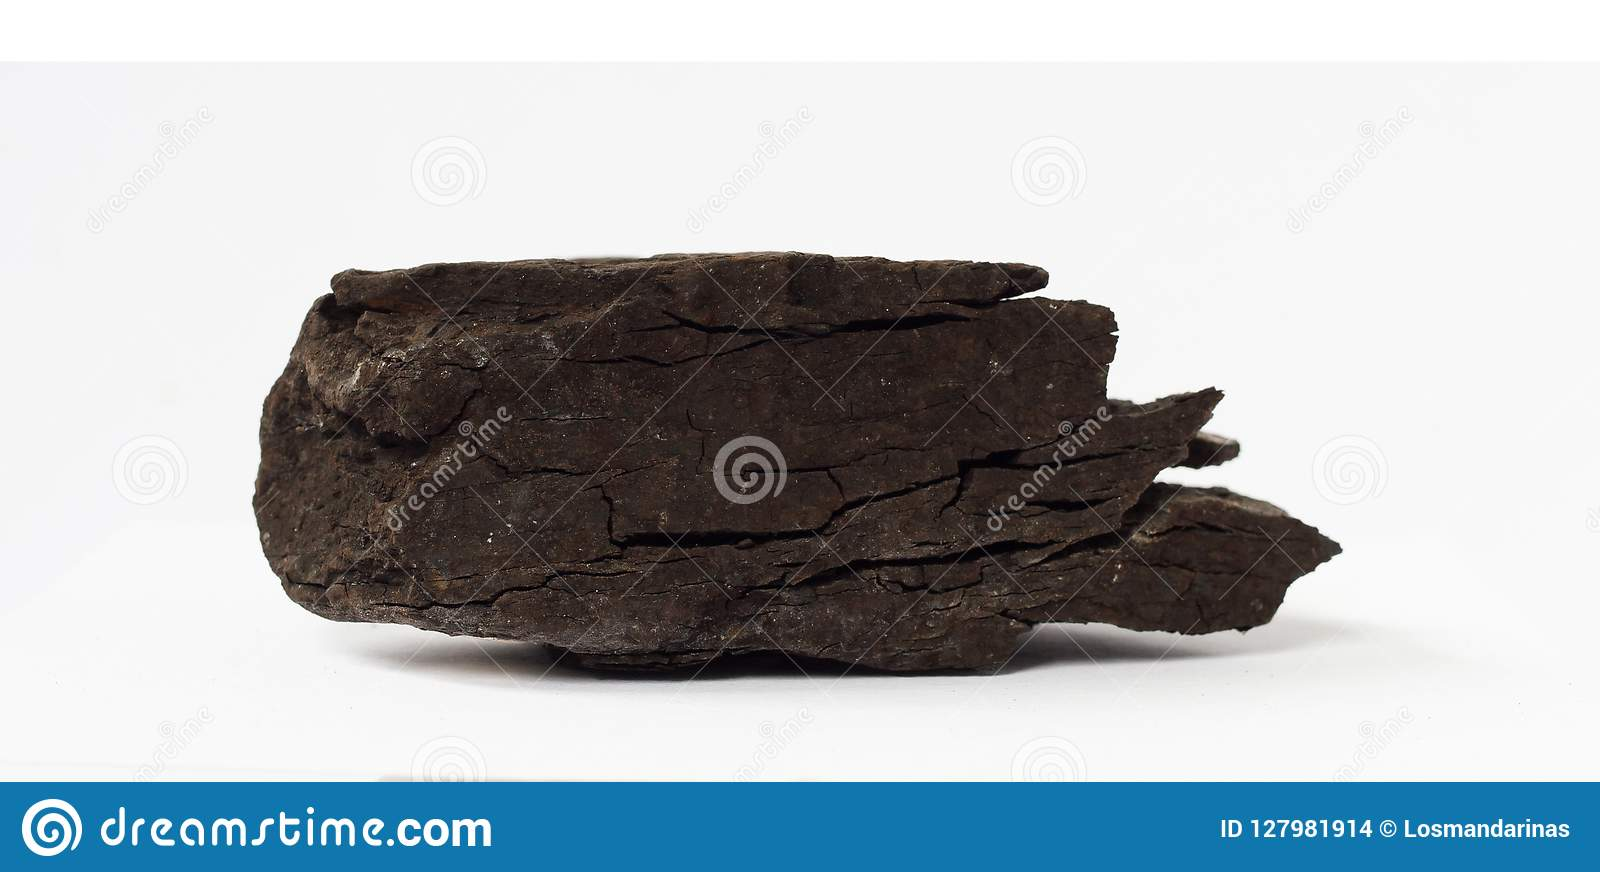 Lignite or brown coal mineral on white background